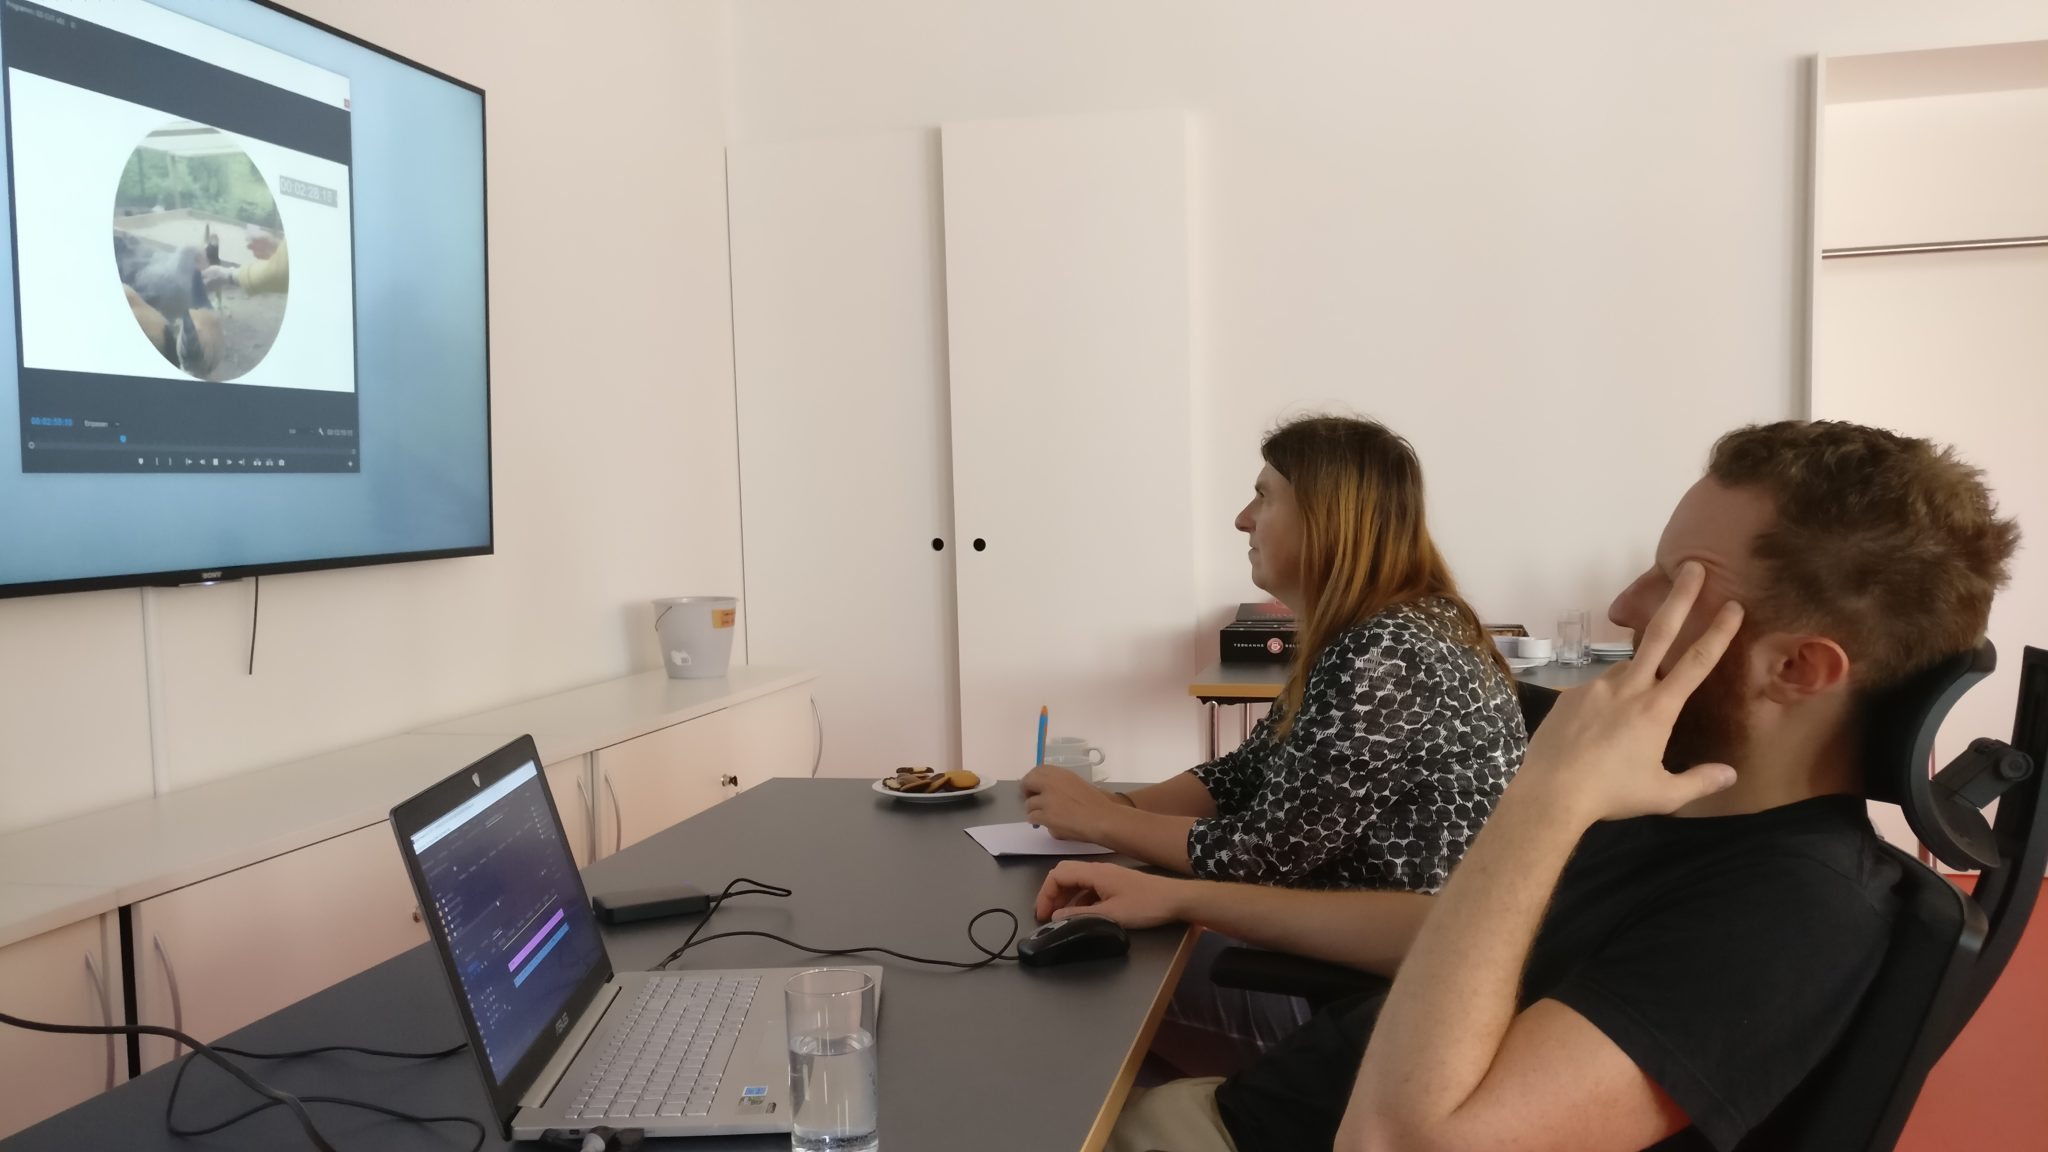 Editing consulting with Grüne Soße groupe